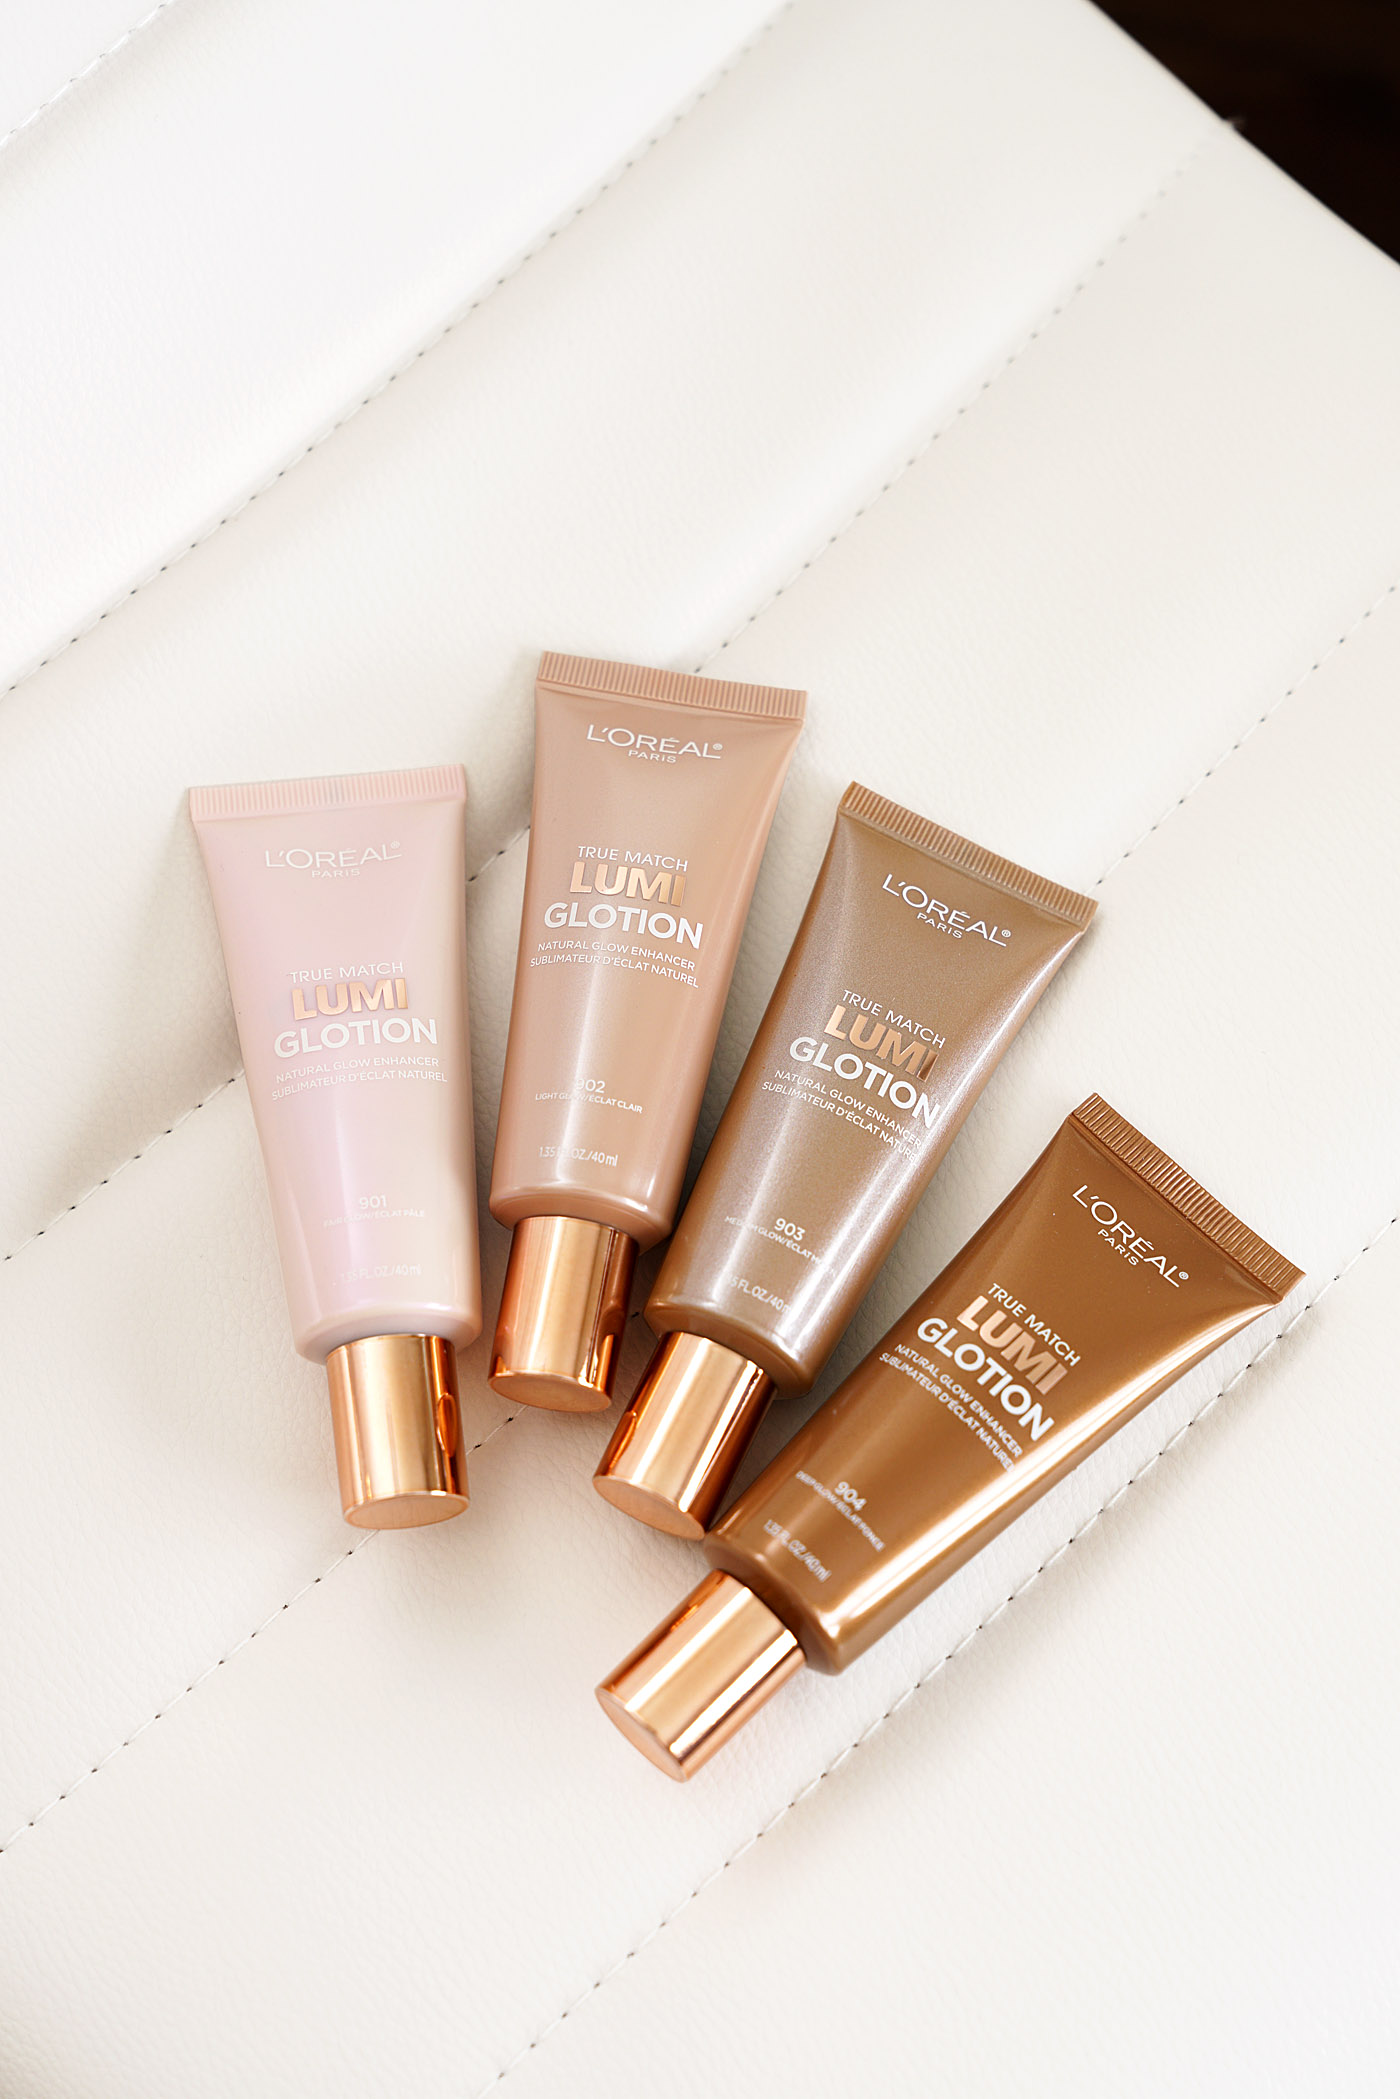 L'Oreal True Match Lumi Glotion Review + Swatches